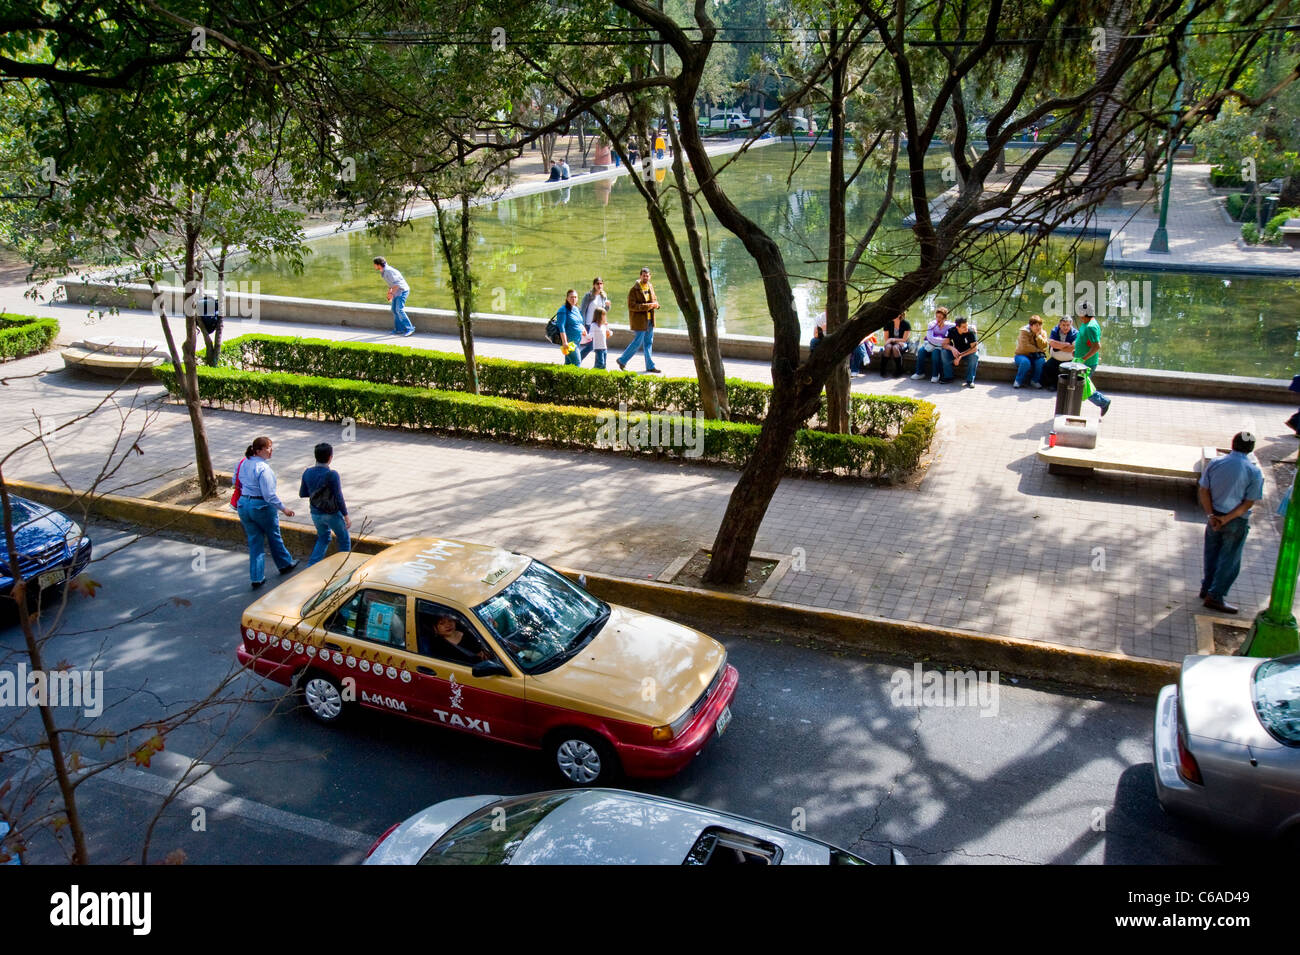 Lincoln Park in Mexico City - Stock Image